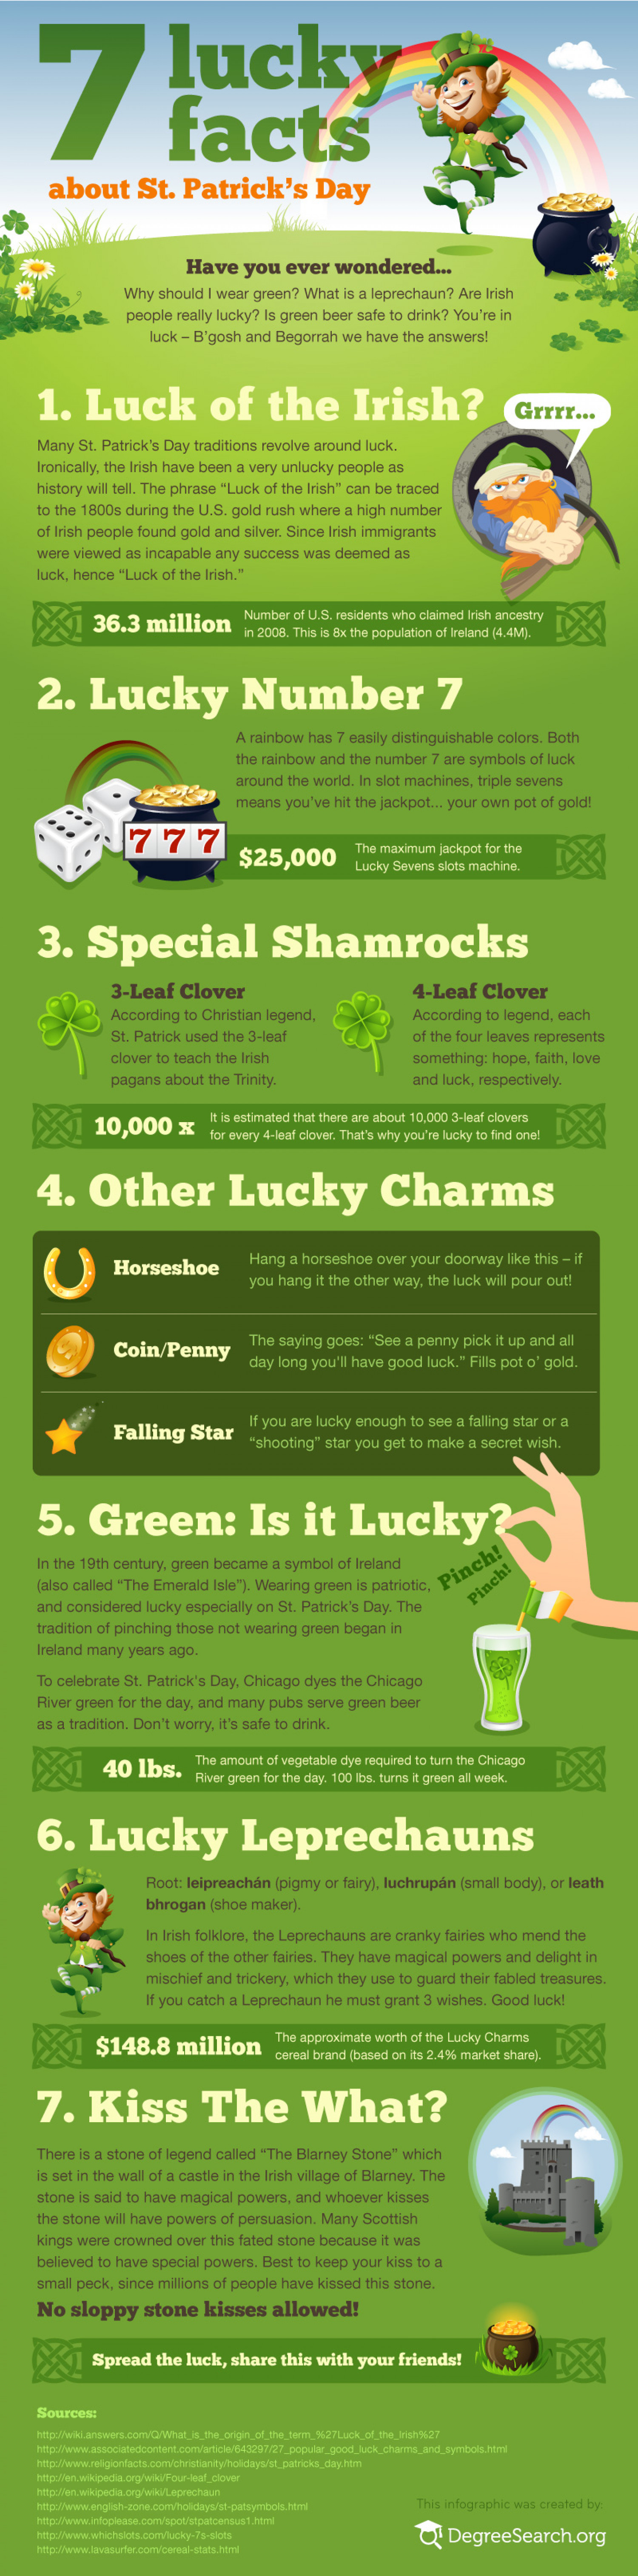 7 Lucky Facts About St. Patricks Day Infographic